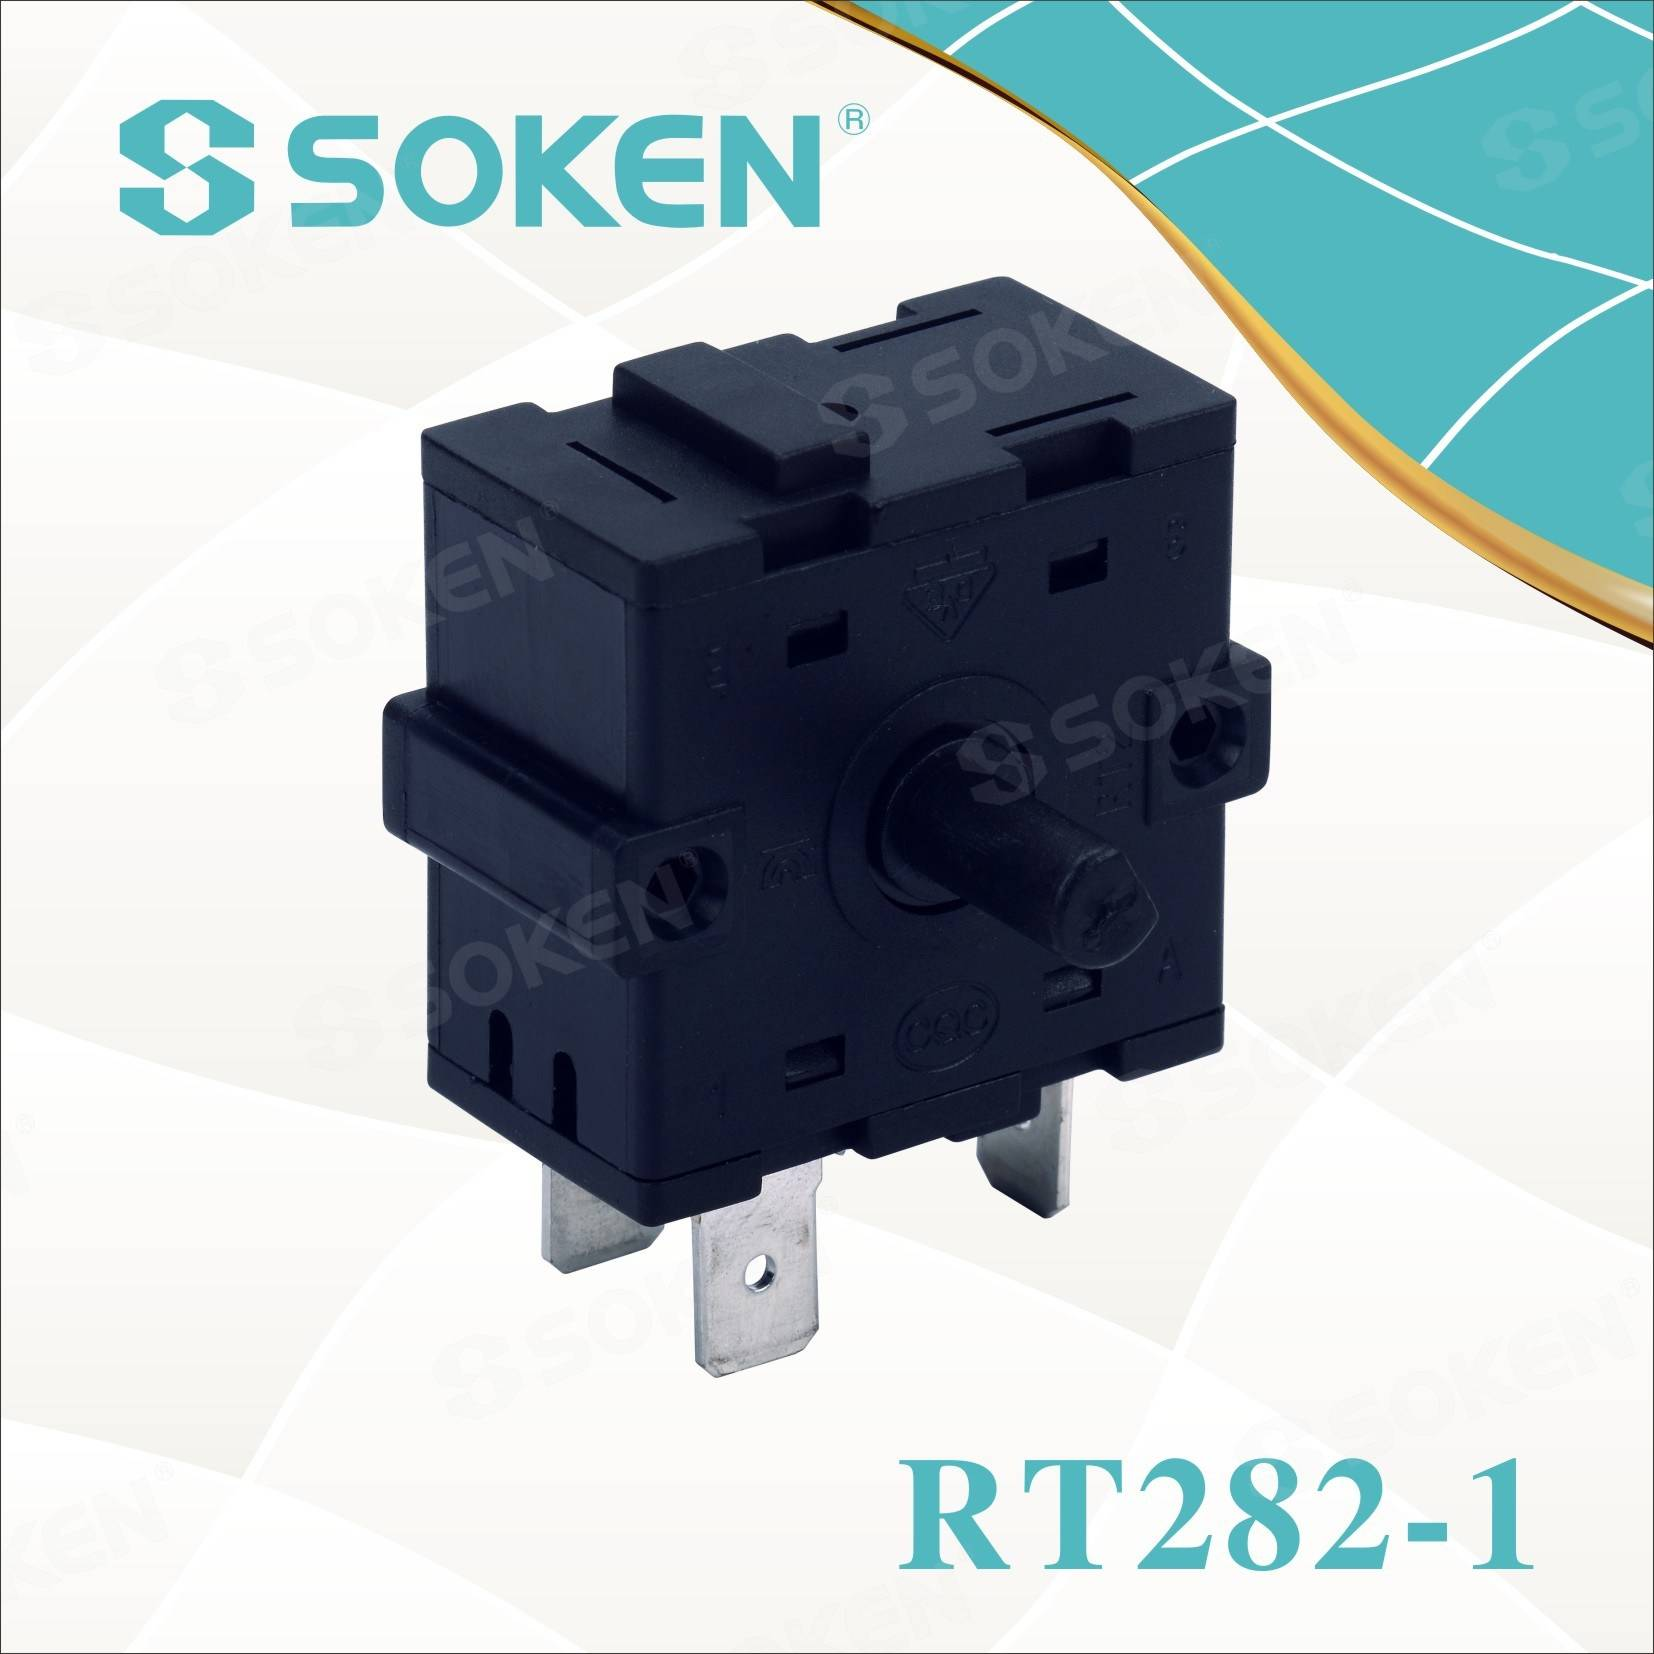 Soken 8 Positie Cooker Rotary Switch